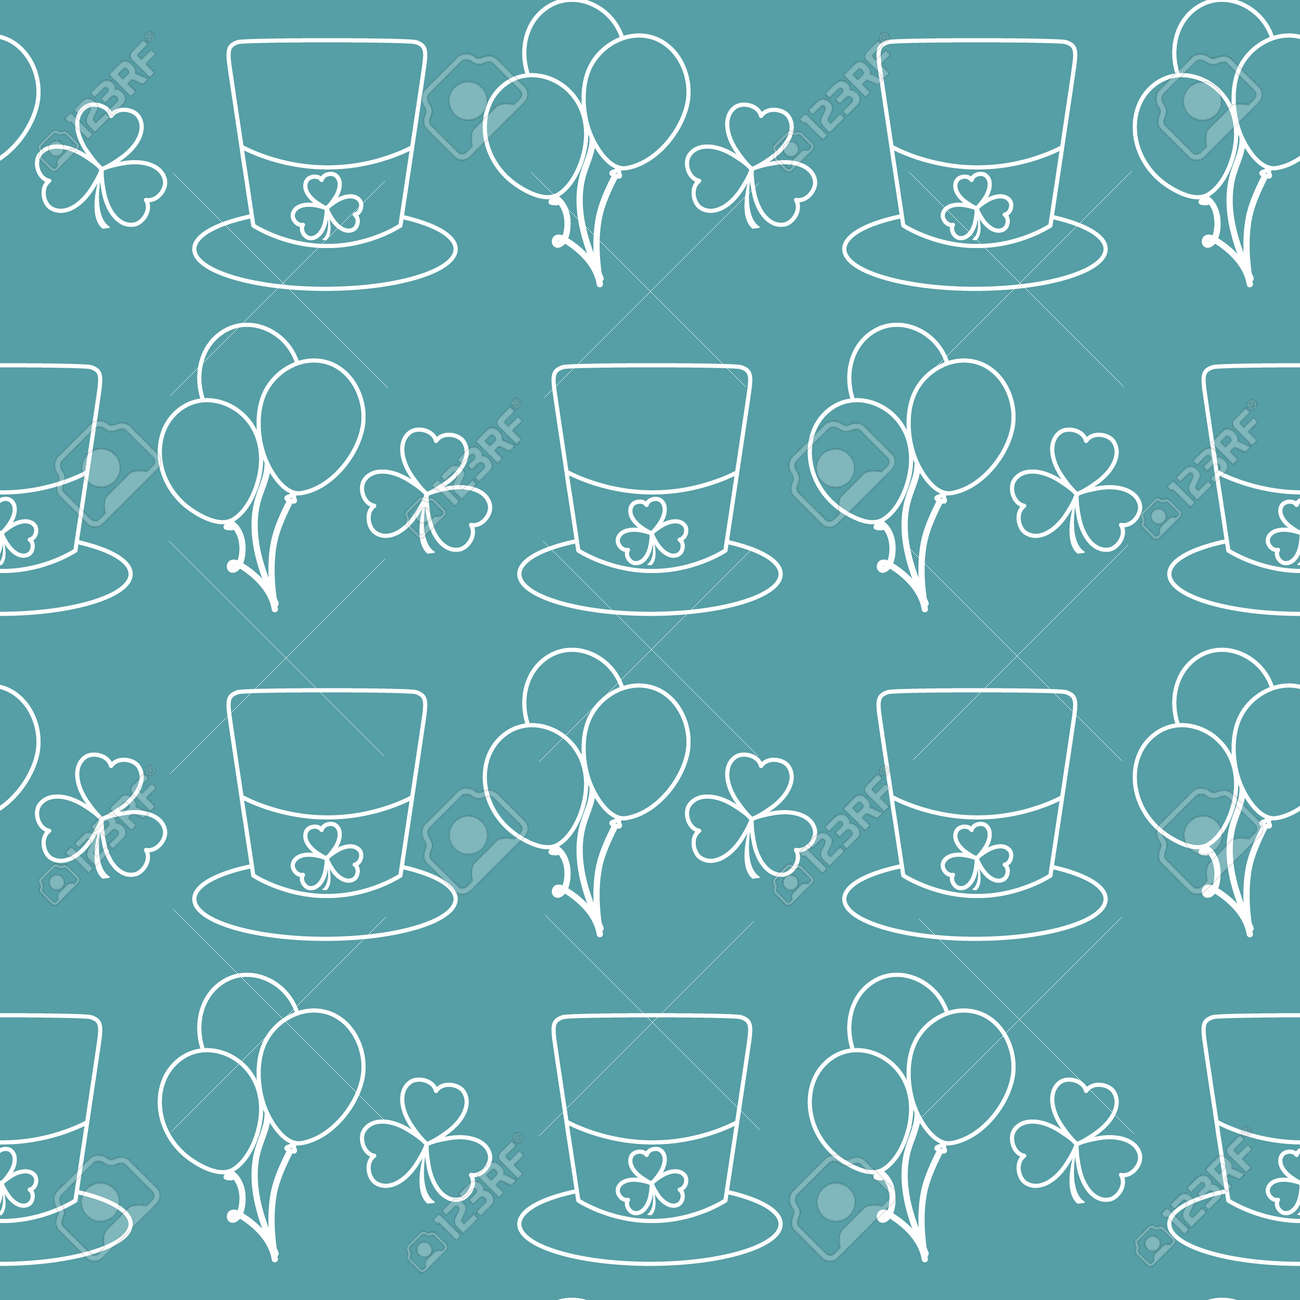 Vector seamless pattern Happy St. Patrick's Day illustration Ireland Shamrock Hat Balloon Irish Holiday Party Festive background Design for greeting card, fabric, print, wrapping paper - 170255299